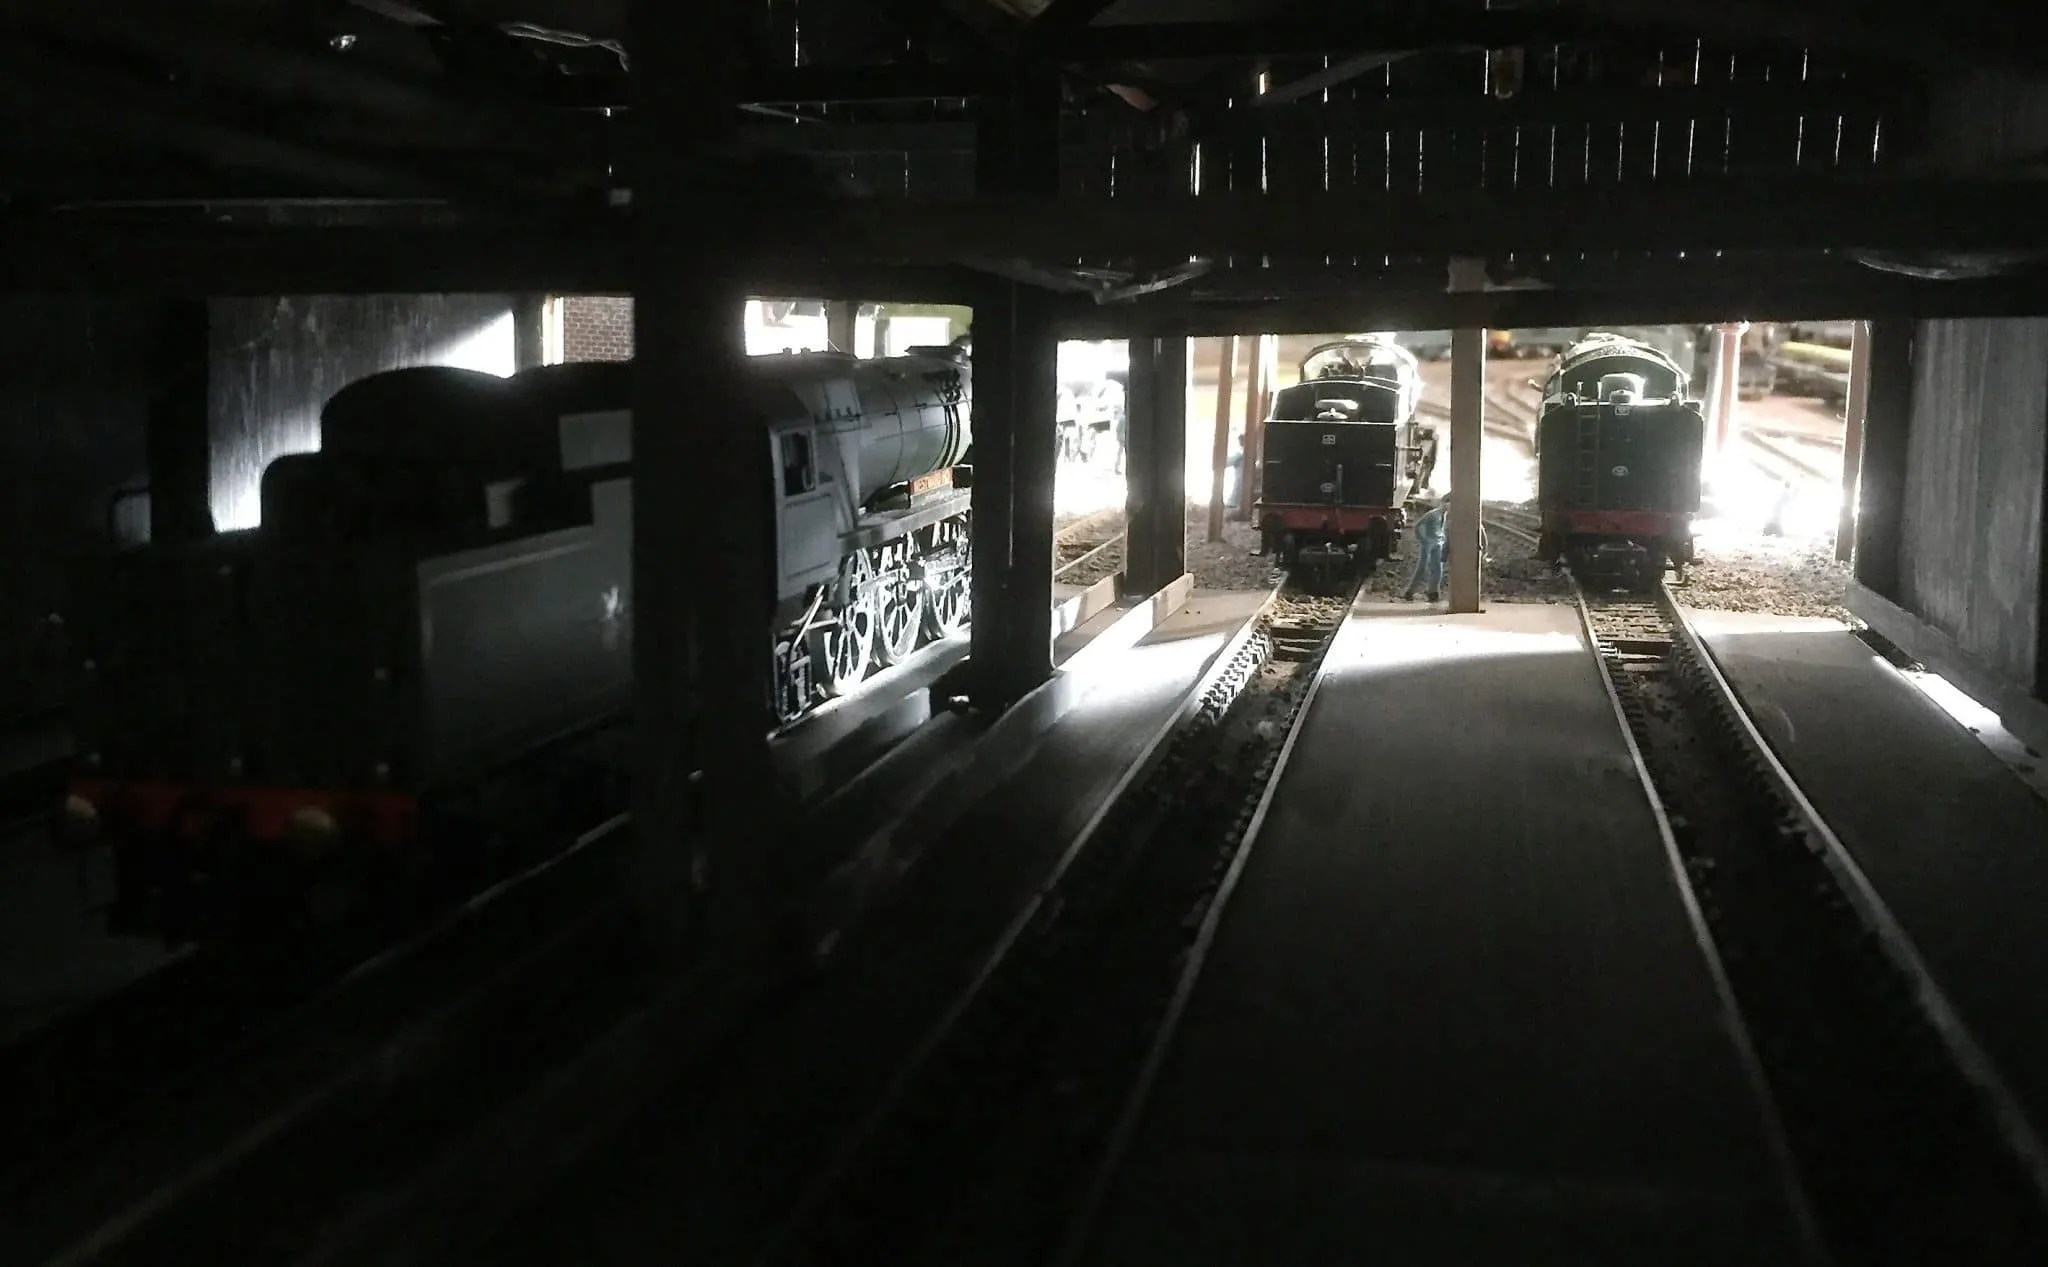 View from the model railway shed looking out - 00 gauge